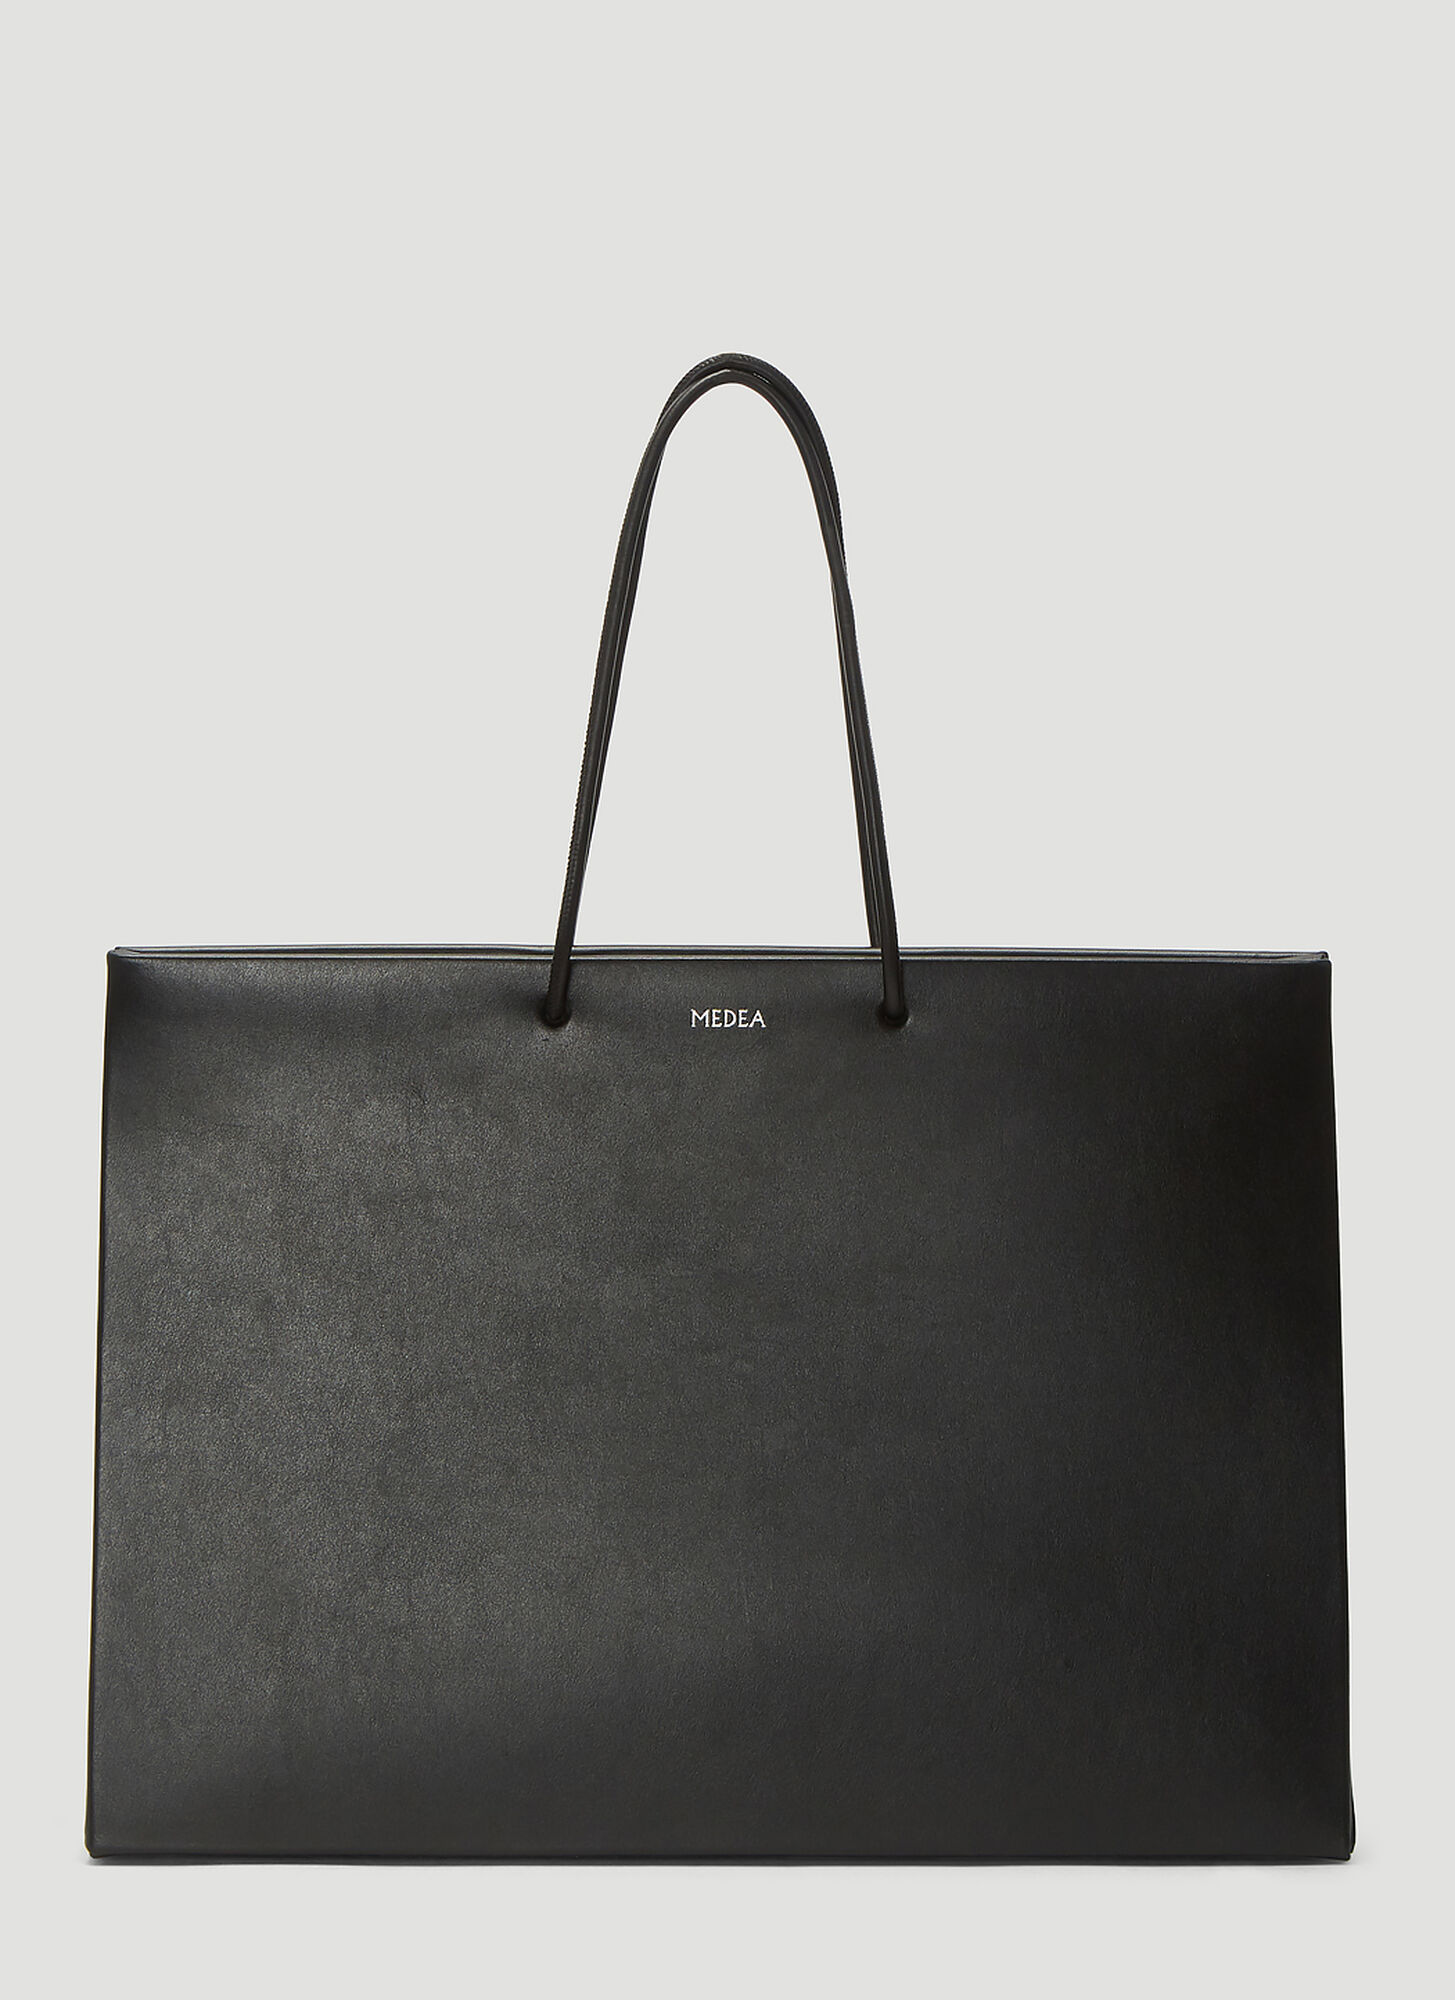 Medea Prima Venti Tote Bag in Black